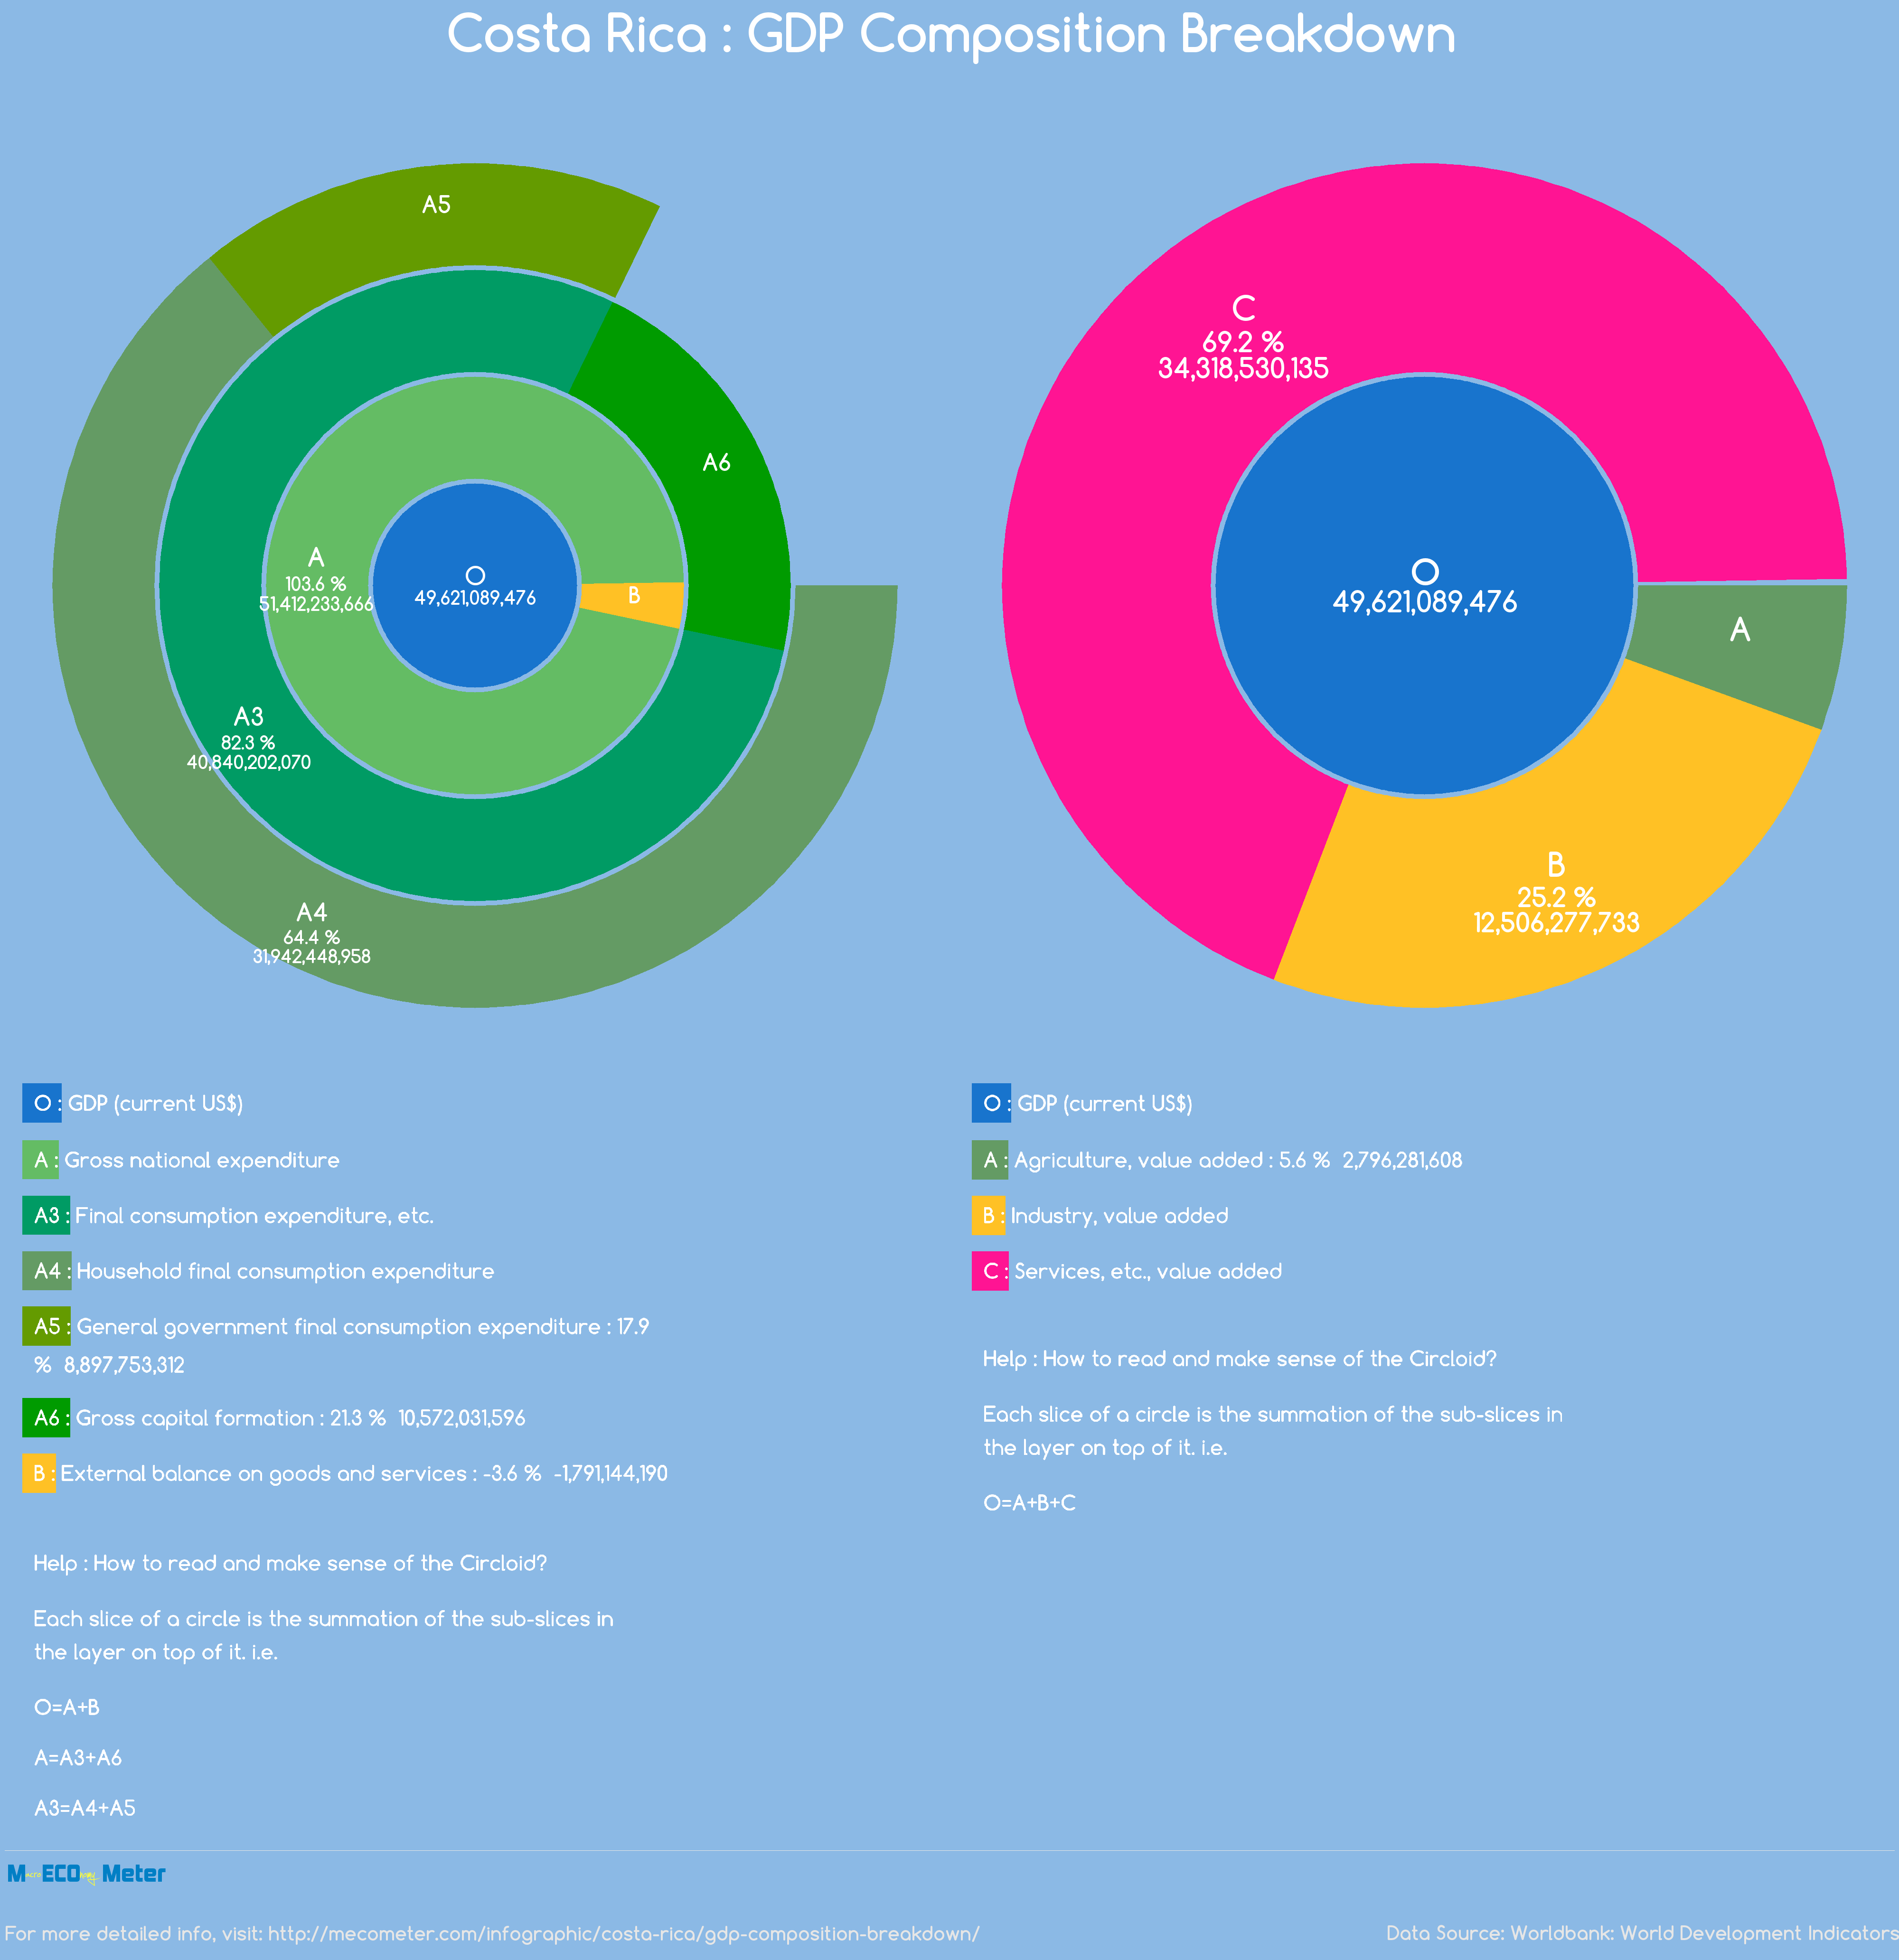 Costa Rica : GDP Composition Breakdown